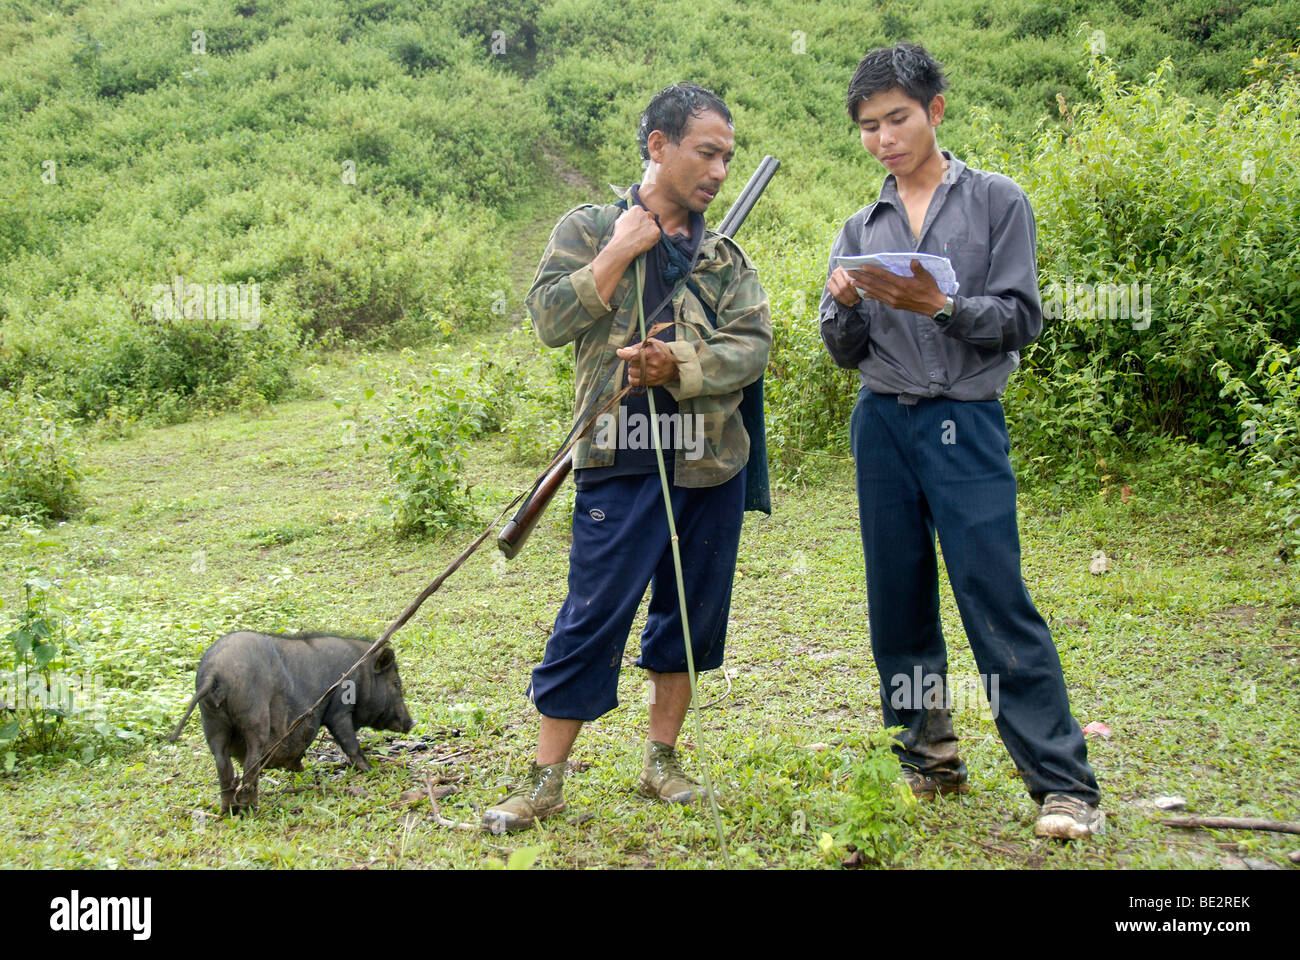 Laotians in conversation, the man Pixor Akha ethnic group with pork and a rifle in the wilderness, rifle, hunting, - Stock Image